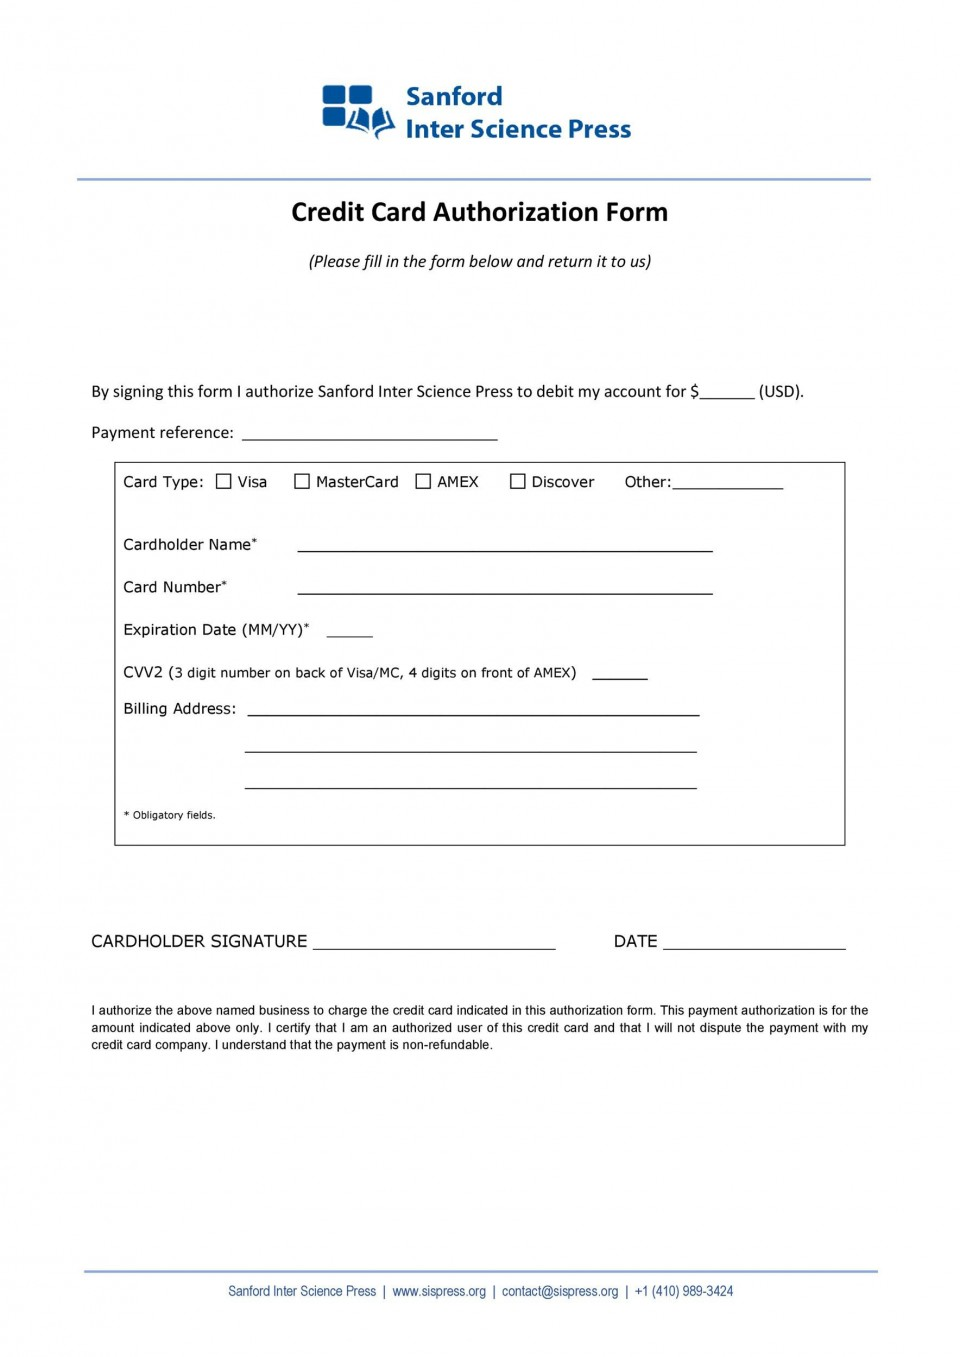 007 Formidable Credit Card Form Template Html Idea  Example Payment Cs960